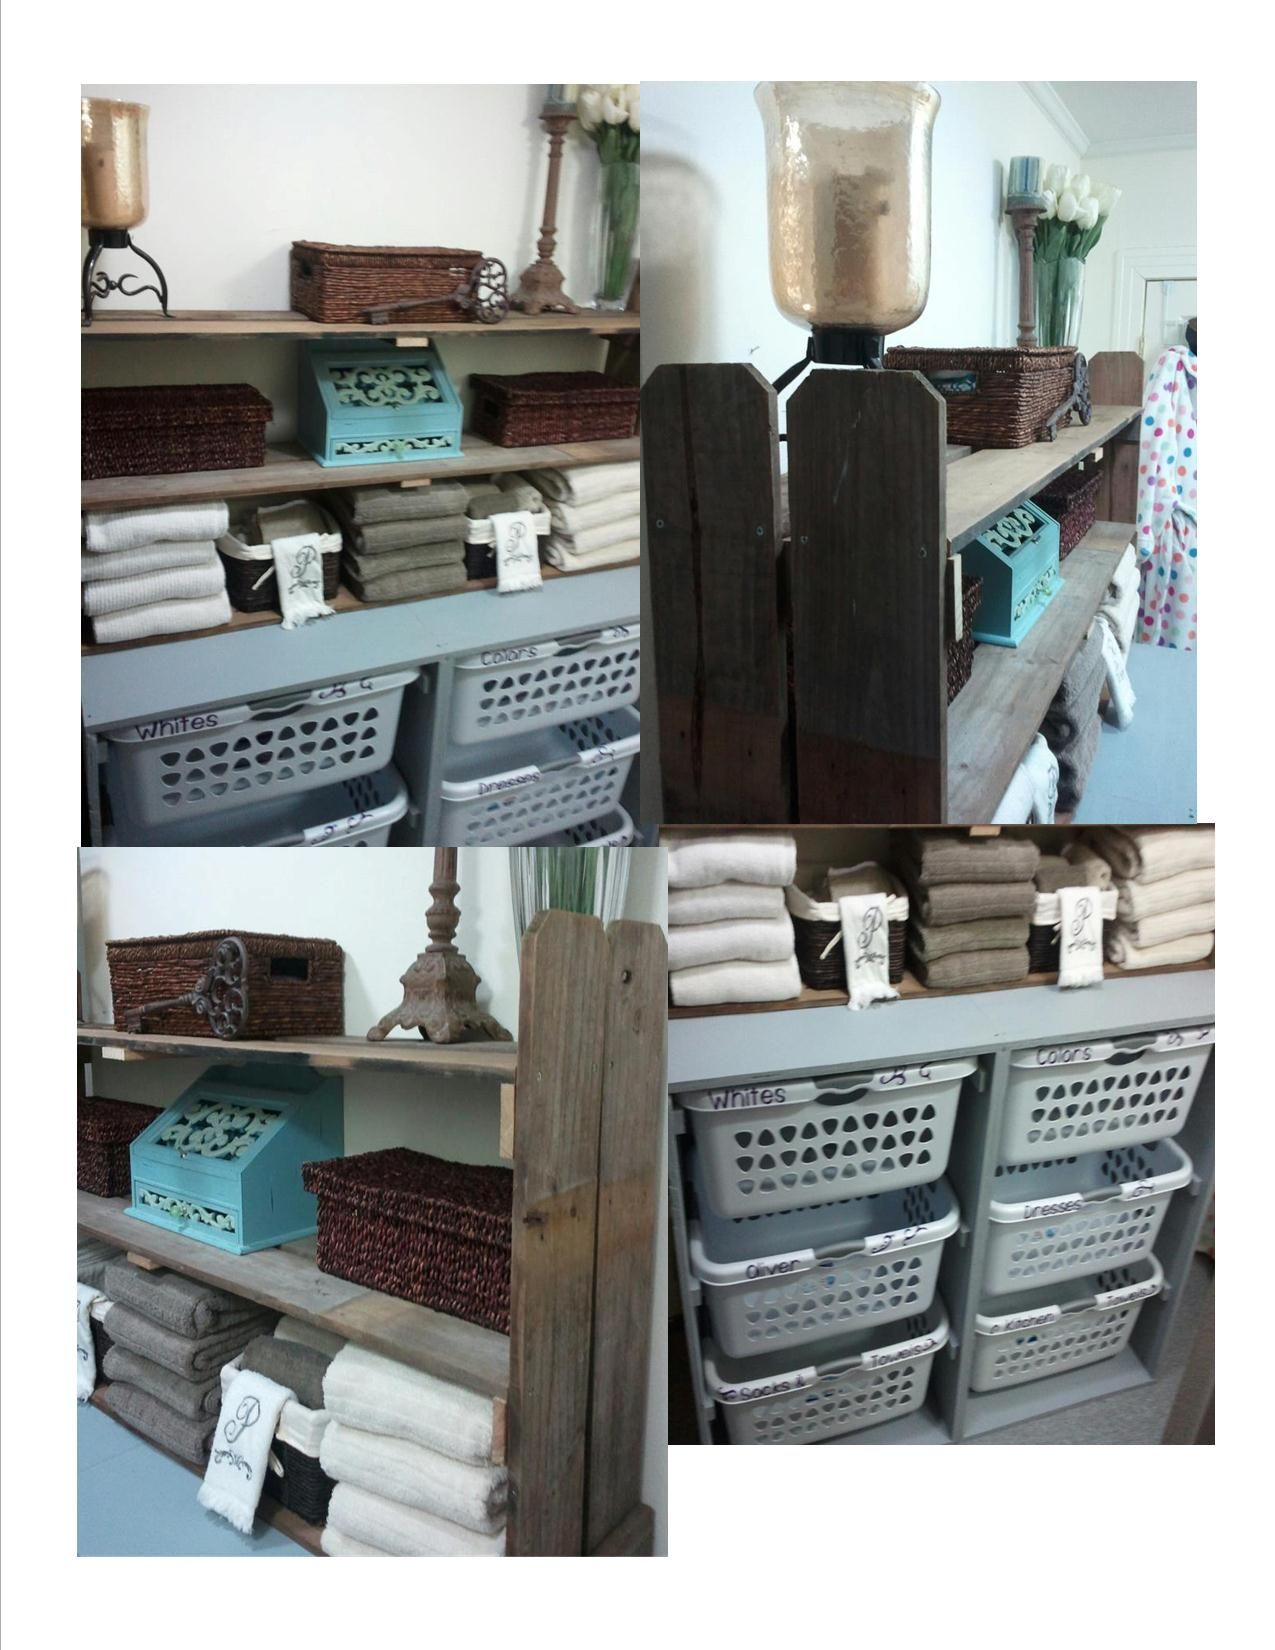 Laundry Organization & Bathroom Shelving Shelves Are Made From Old